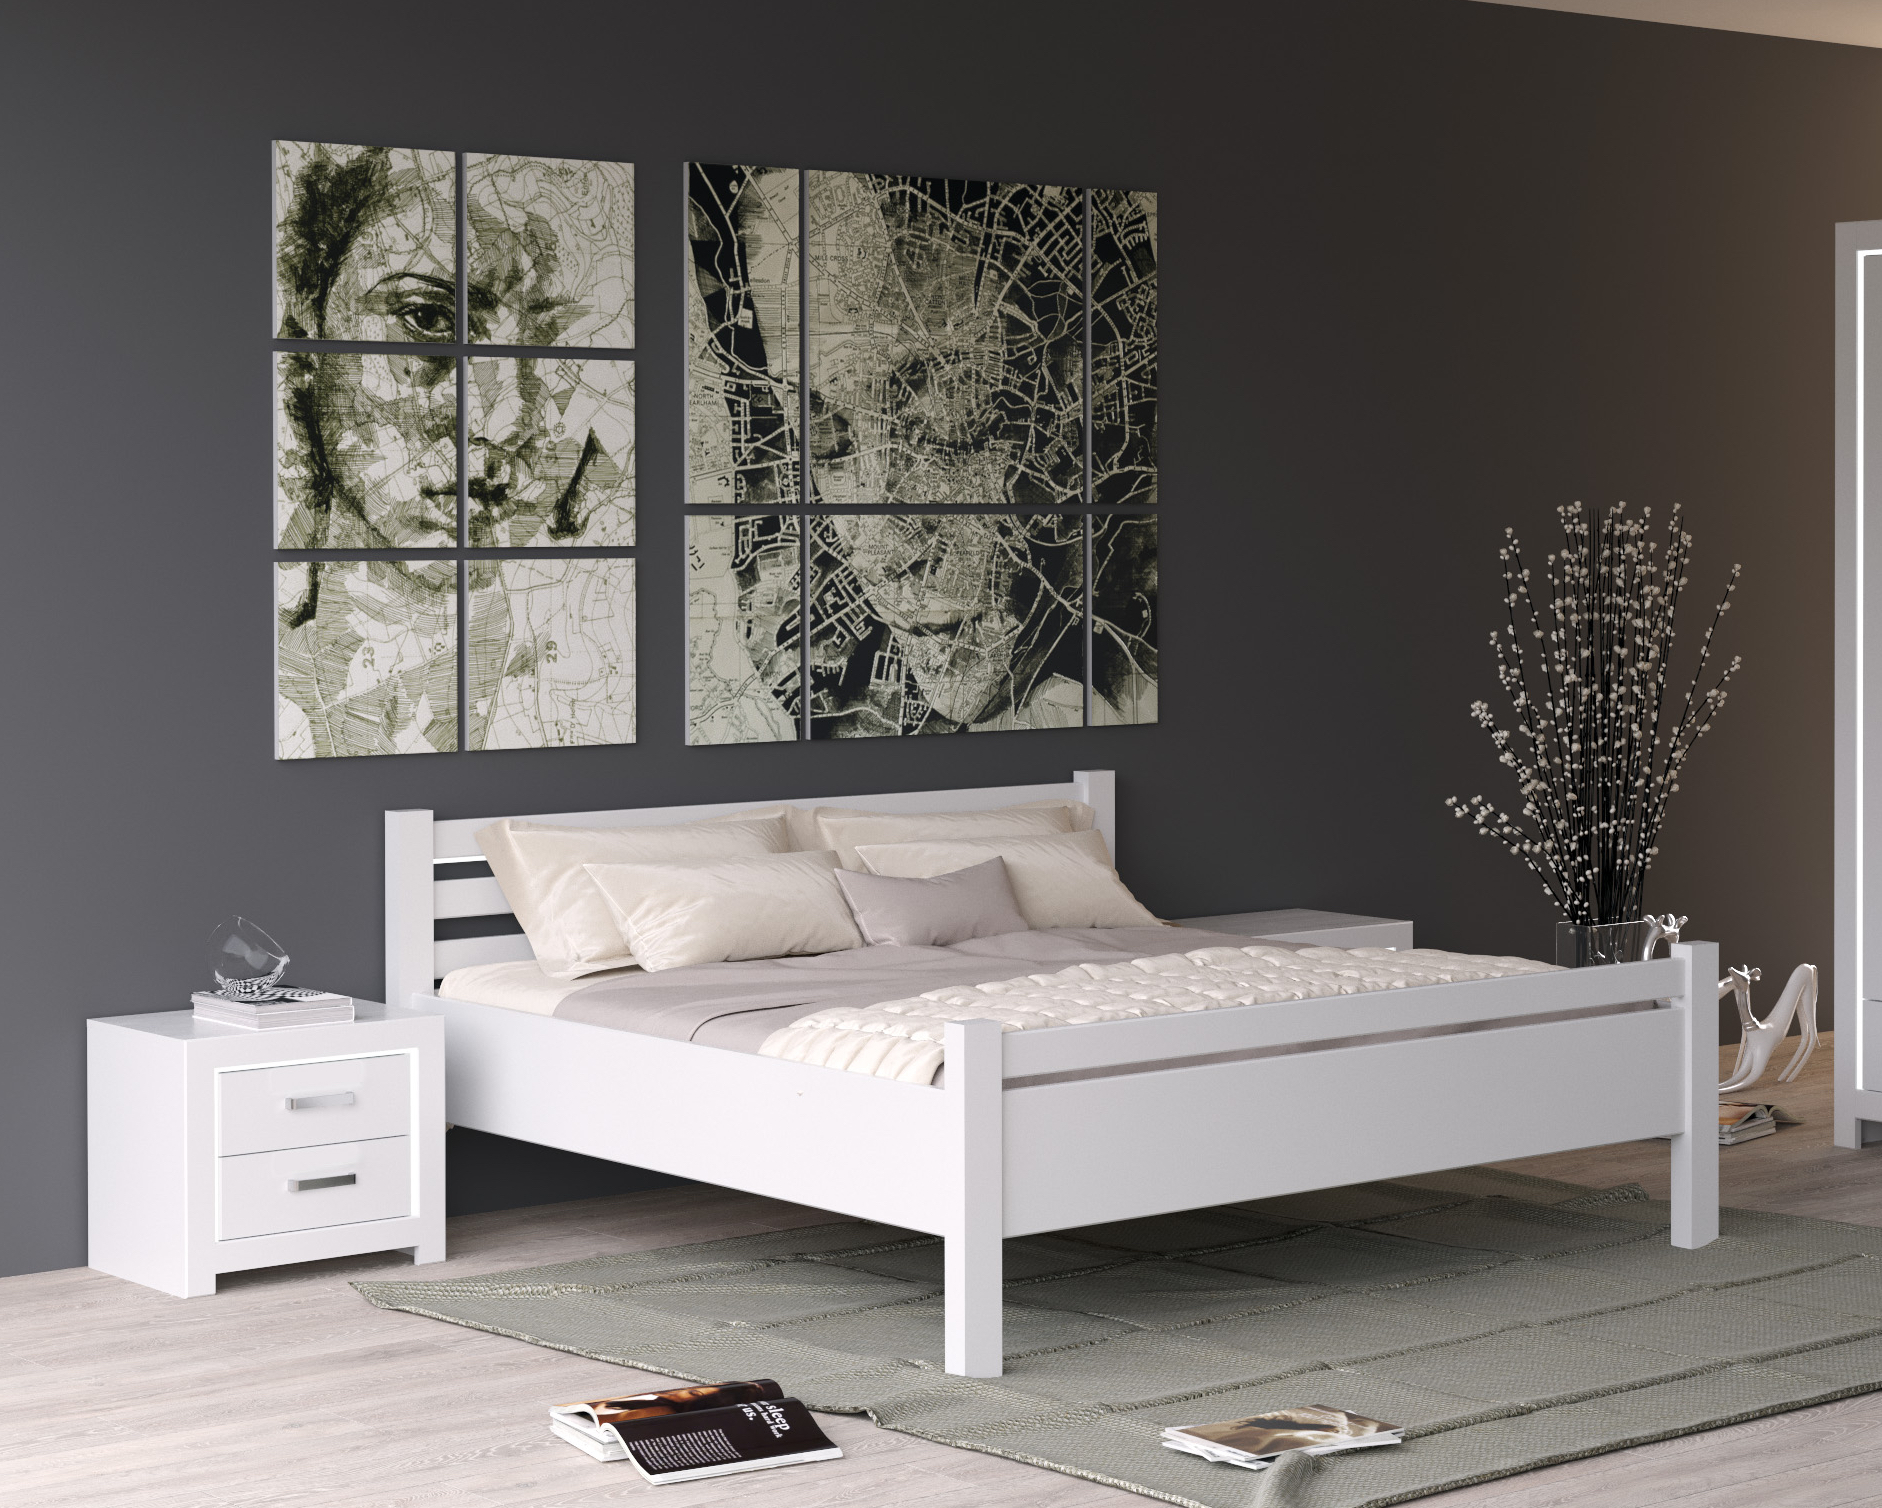 massivholzbett village 180x200 weiss. Black Bedroom Furniture Sets. Home Design Ideas